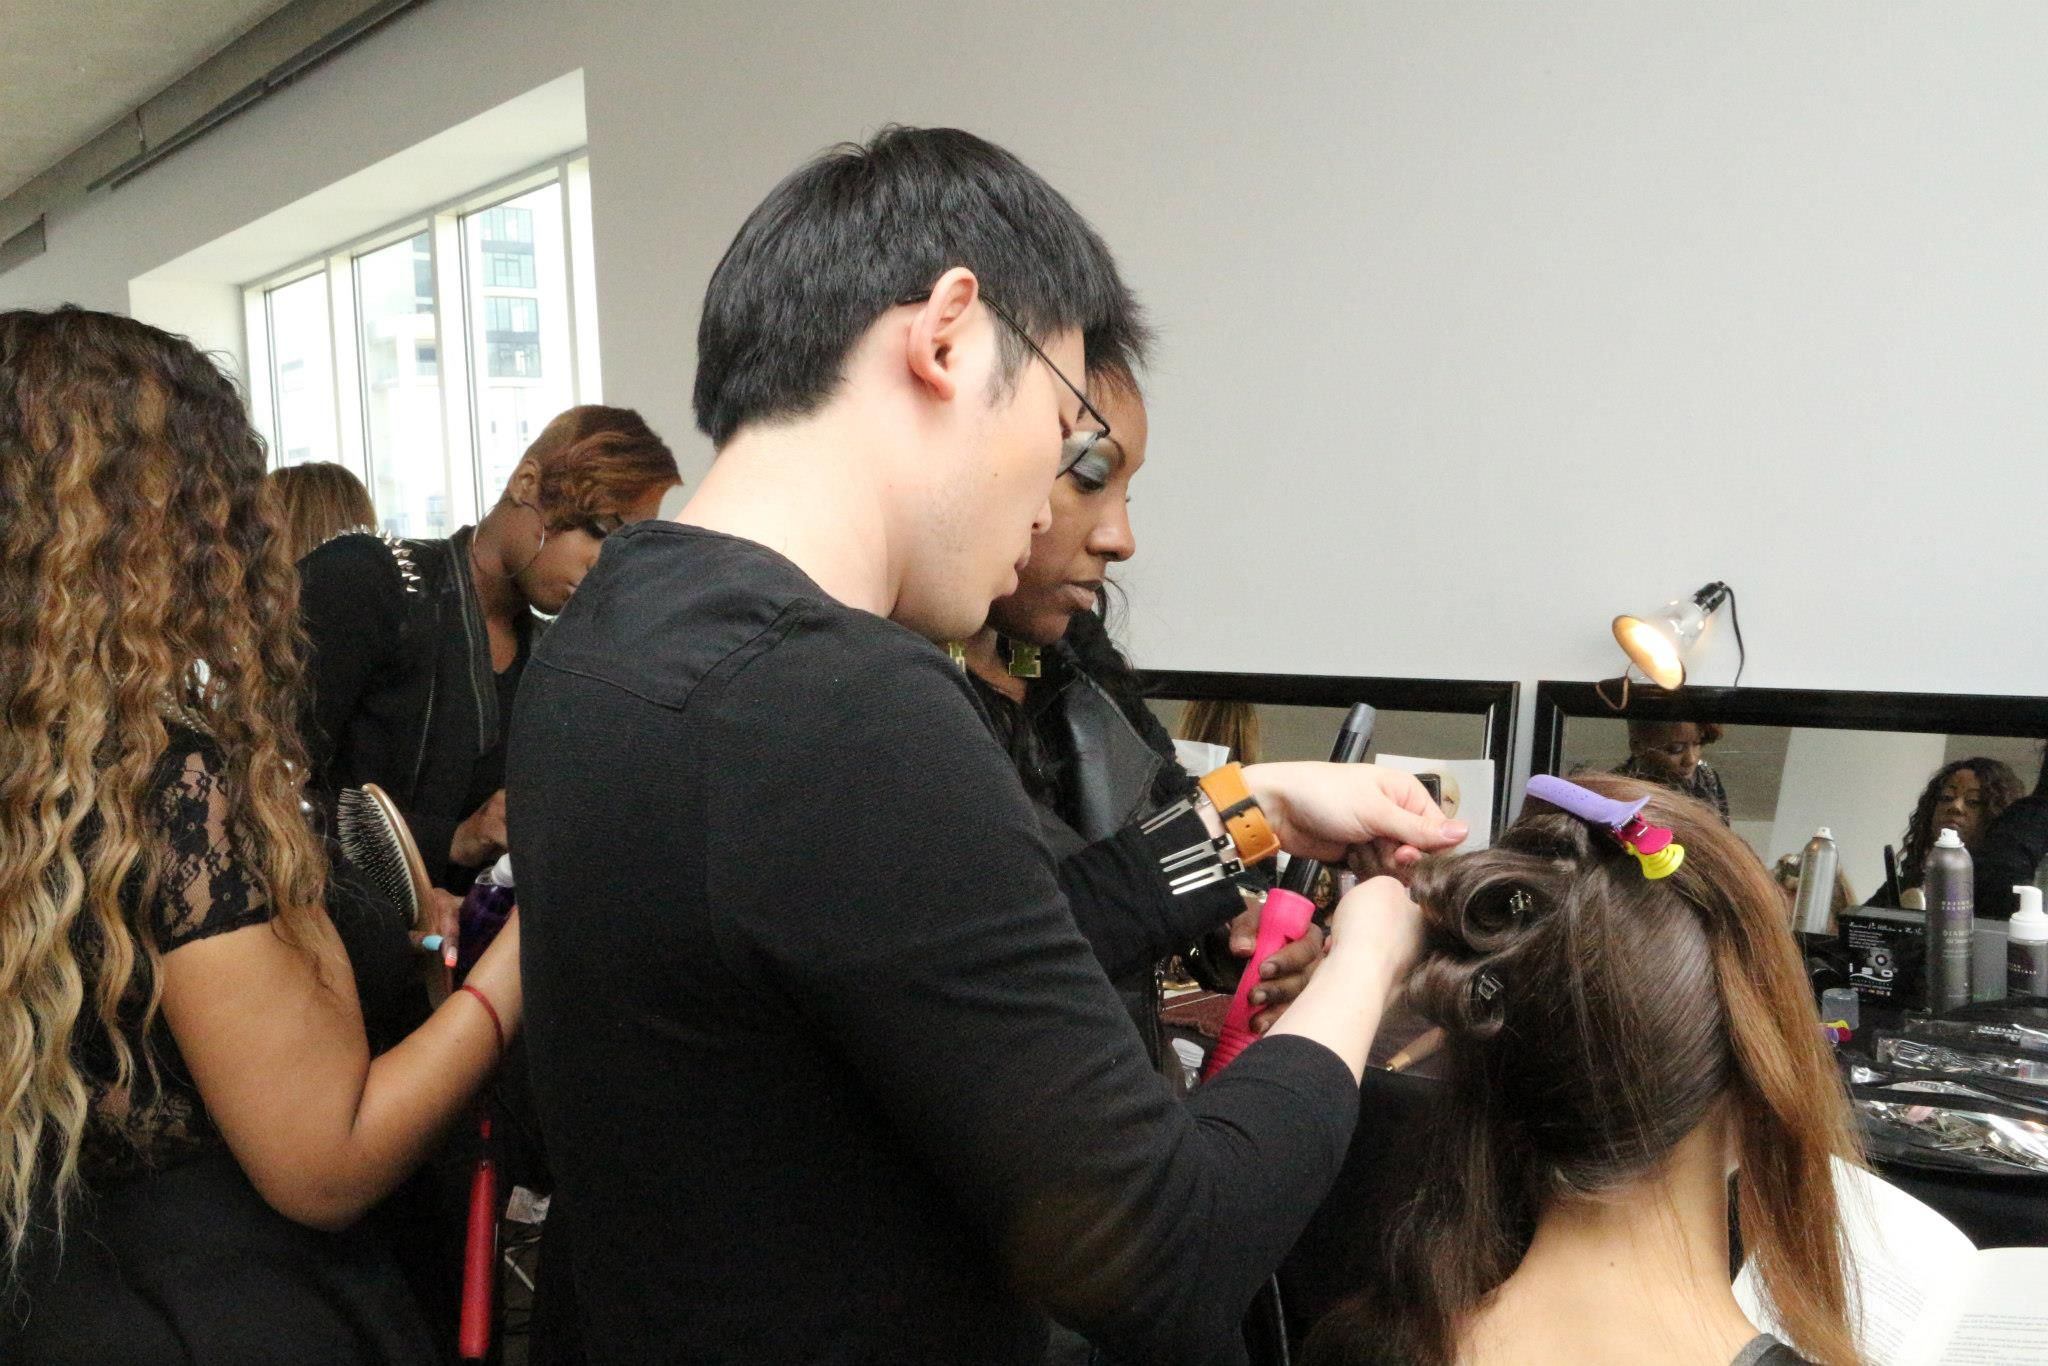 Lead stylist Michelle Swiney created the hair looks for